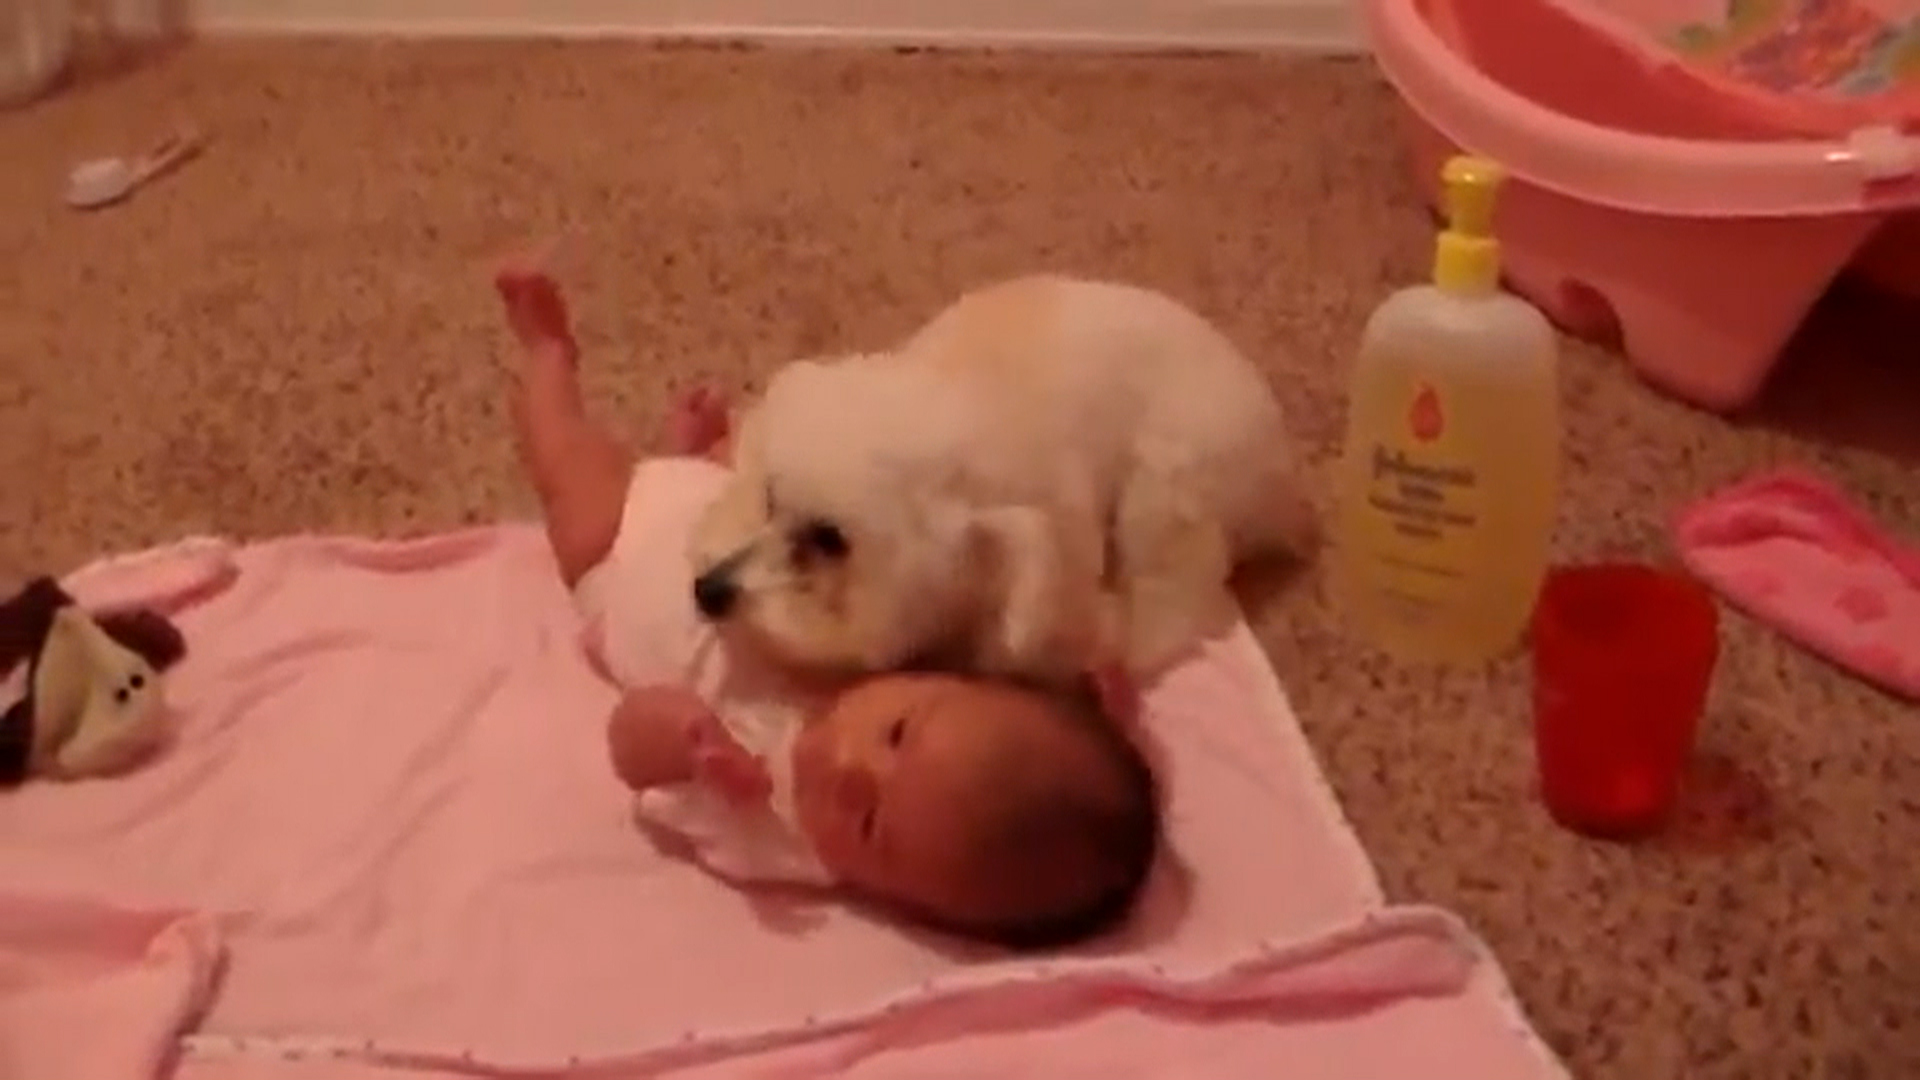 Adorable Puppy Protects Baby From Blow Dryer Todaycom